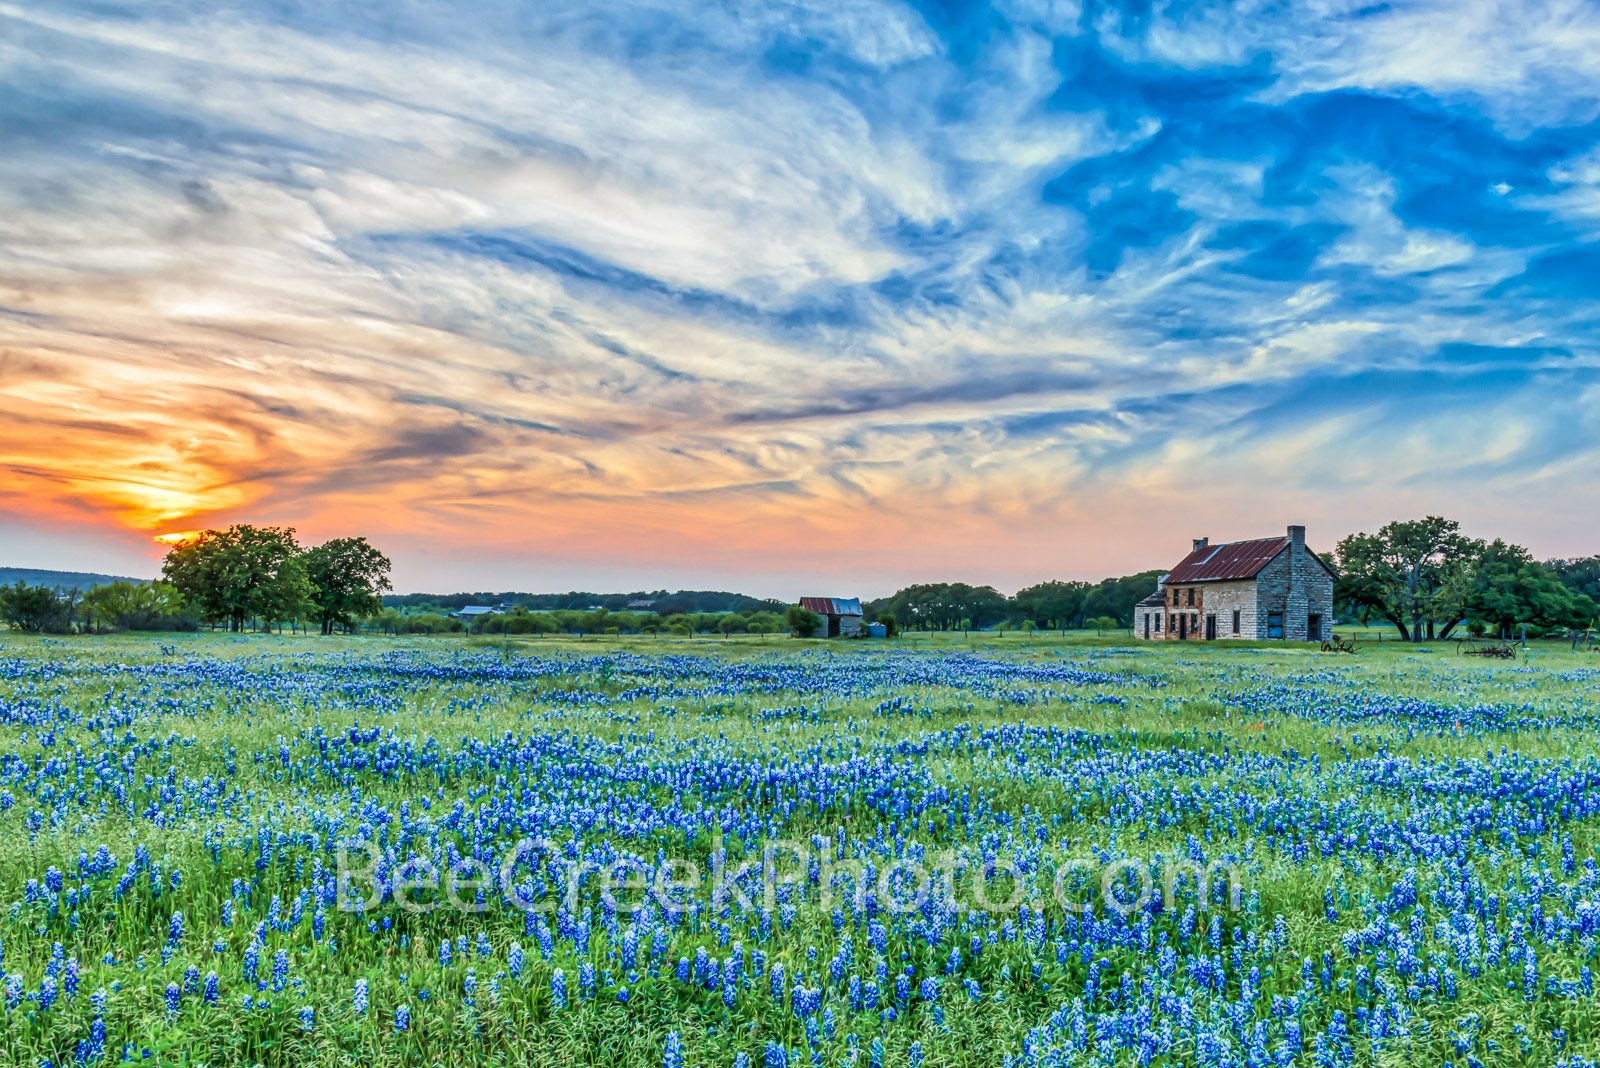 Bluebonnets, blue bonnets, field of bluebonnets, sunset, farmhouse, wildflowers, sky, clouds, hill country, flowers,, photo